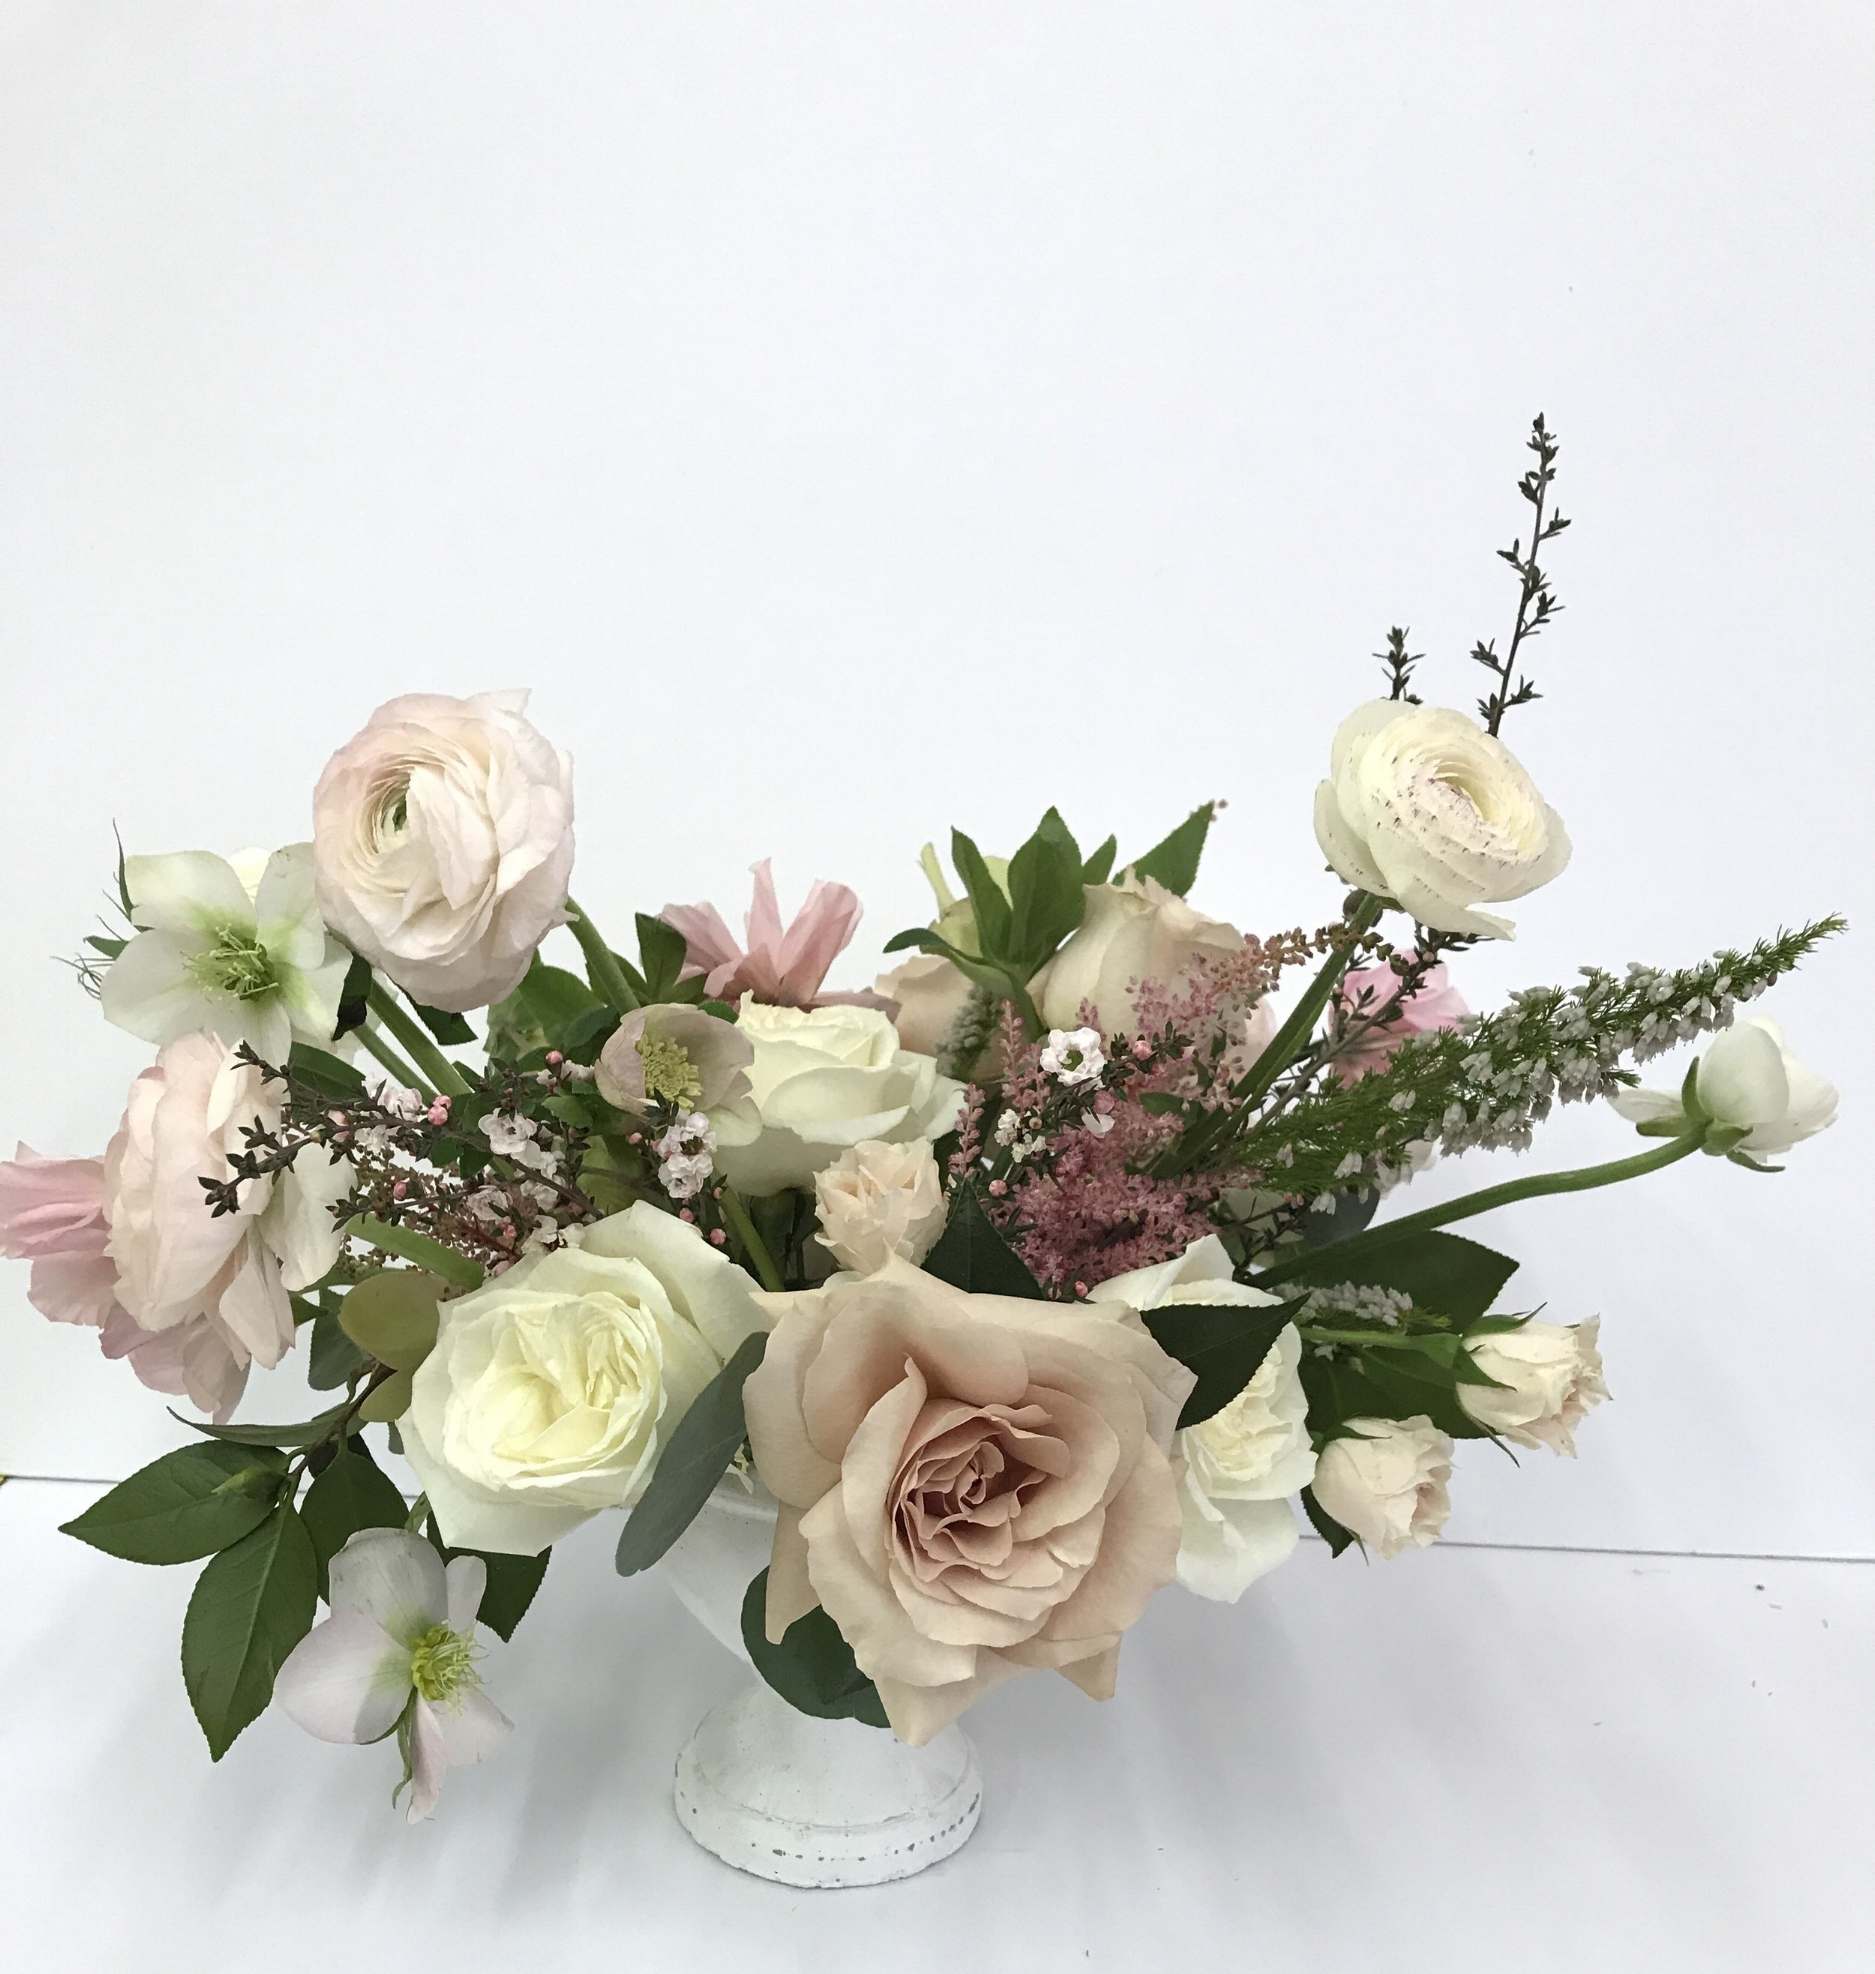 - Make your Valentine swoon this year with gorgeous flowers from Urban Petals!We are offering one beautiful, curated arrangement in three sizes:Luxe: $125Lush: $65Petite: $30Pre-Orders are closed. Please call (864) 569-6112 to check current availability.After February 9, all orders will be available on a first-come basis for pick-uponly at our Studio.Delivery is available with Pre-orders Only for $15 in Greenville County.While we realize these options may not be the norm, we're a small business and want to provide the highest quality possible to each of our customers.*Please note: Arrangements are